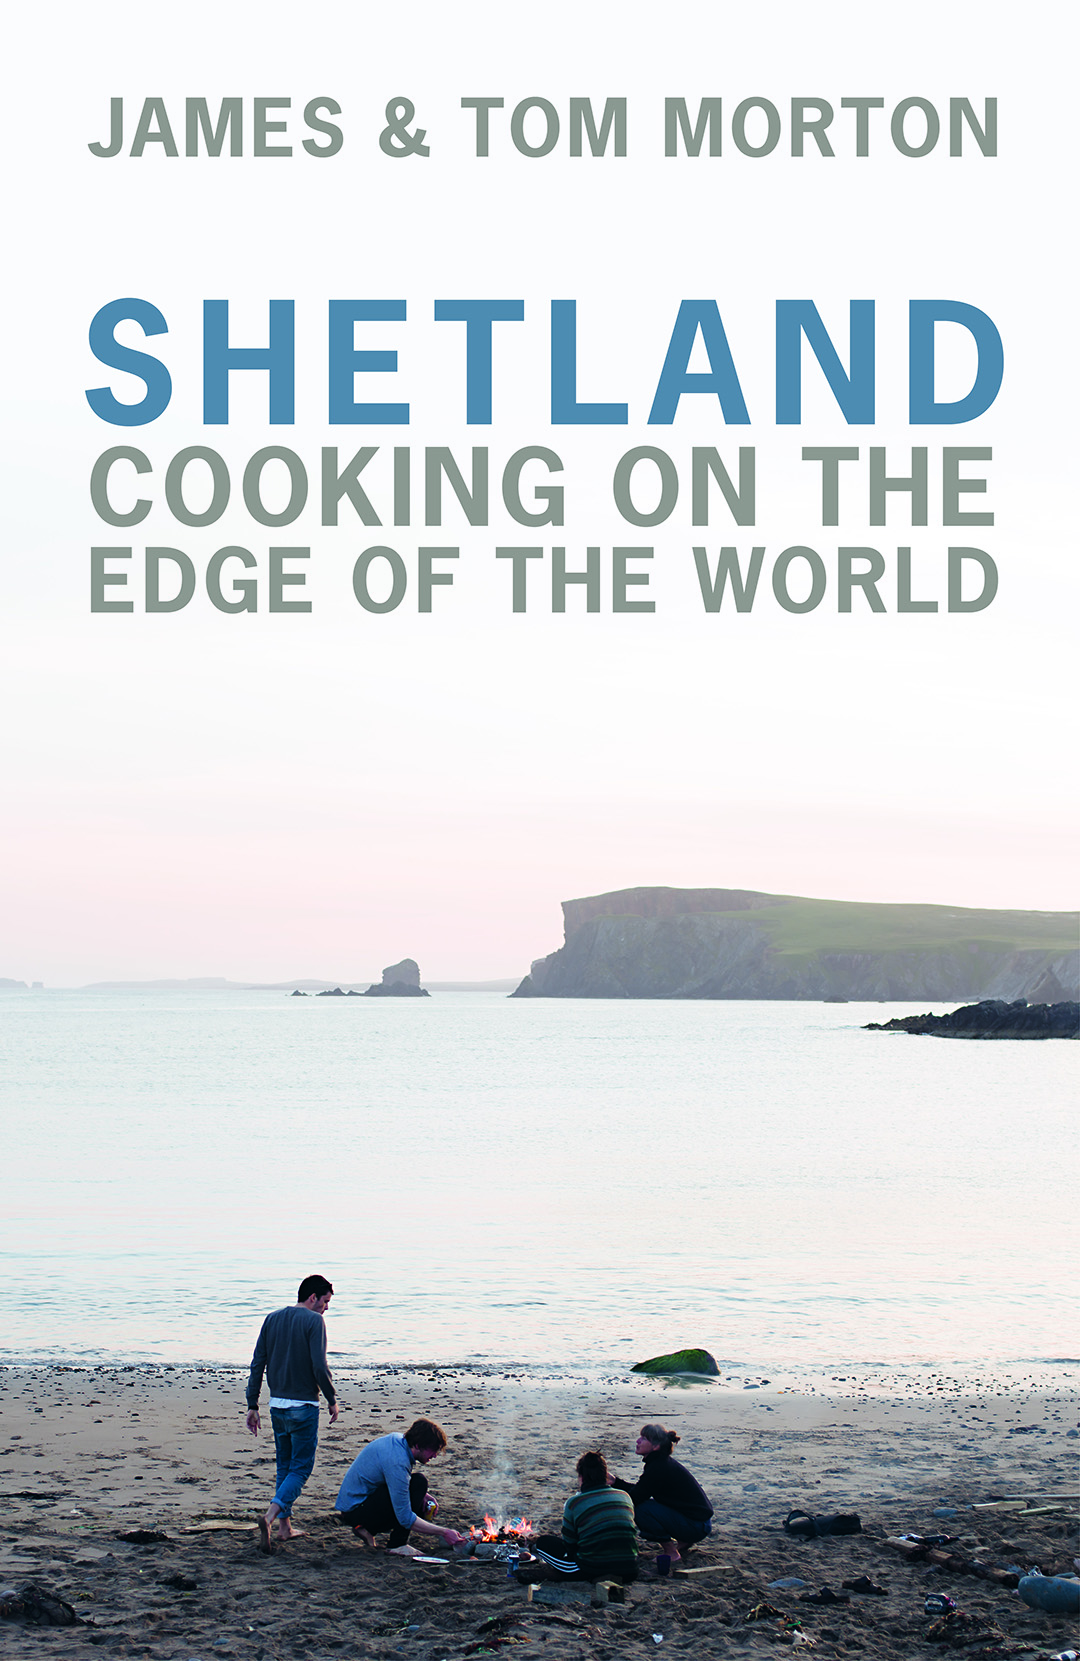 James morton shetland cokoing on the edge of the world book cover